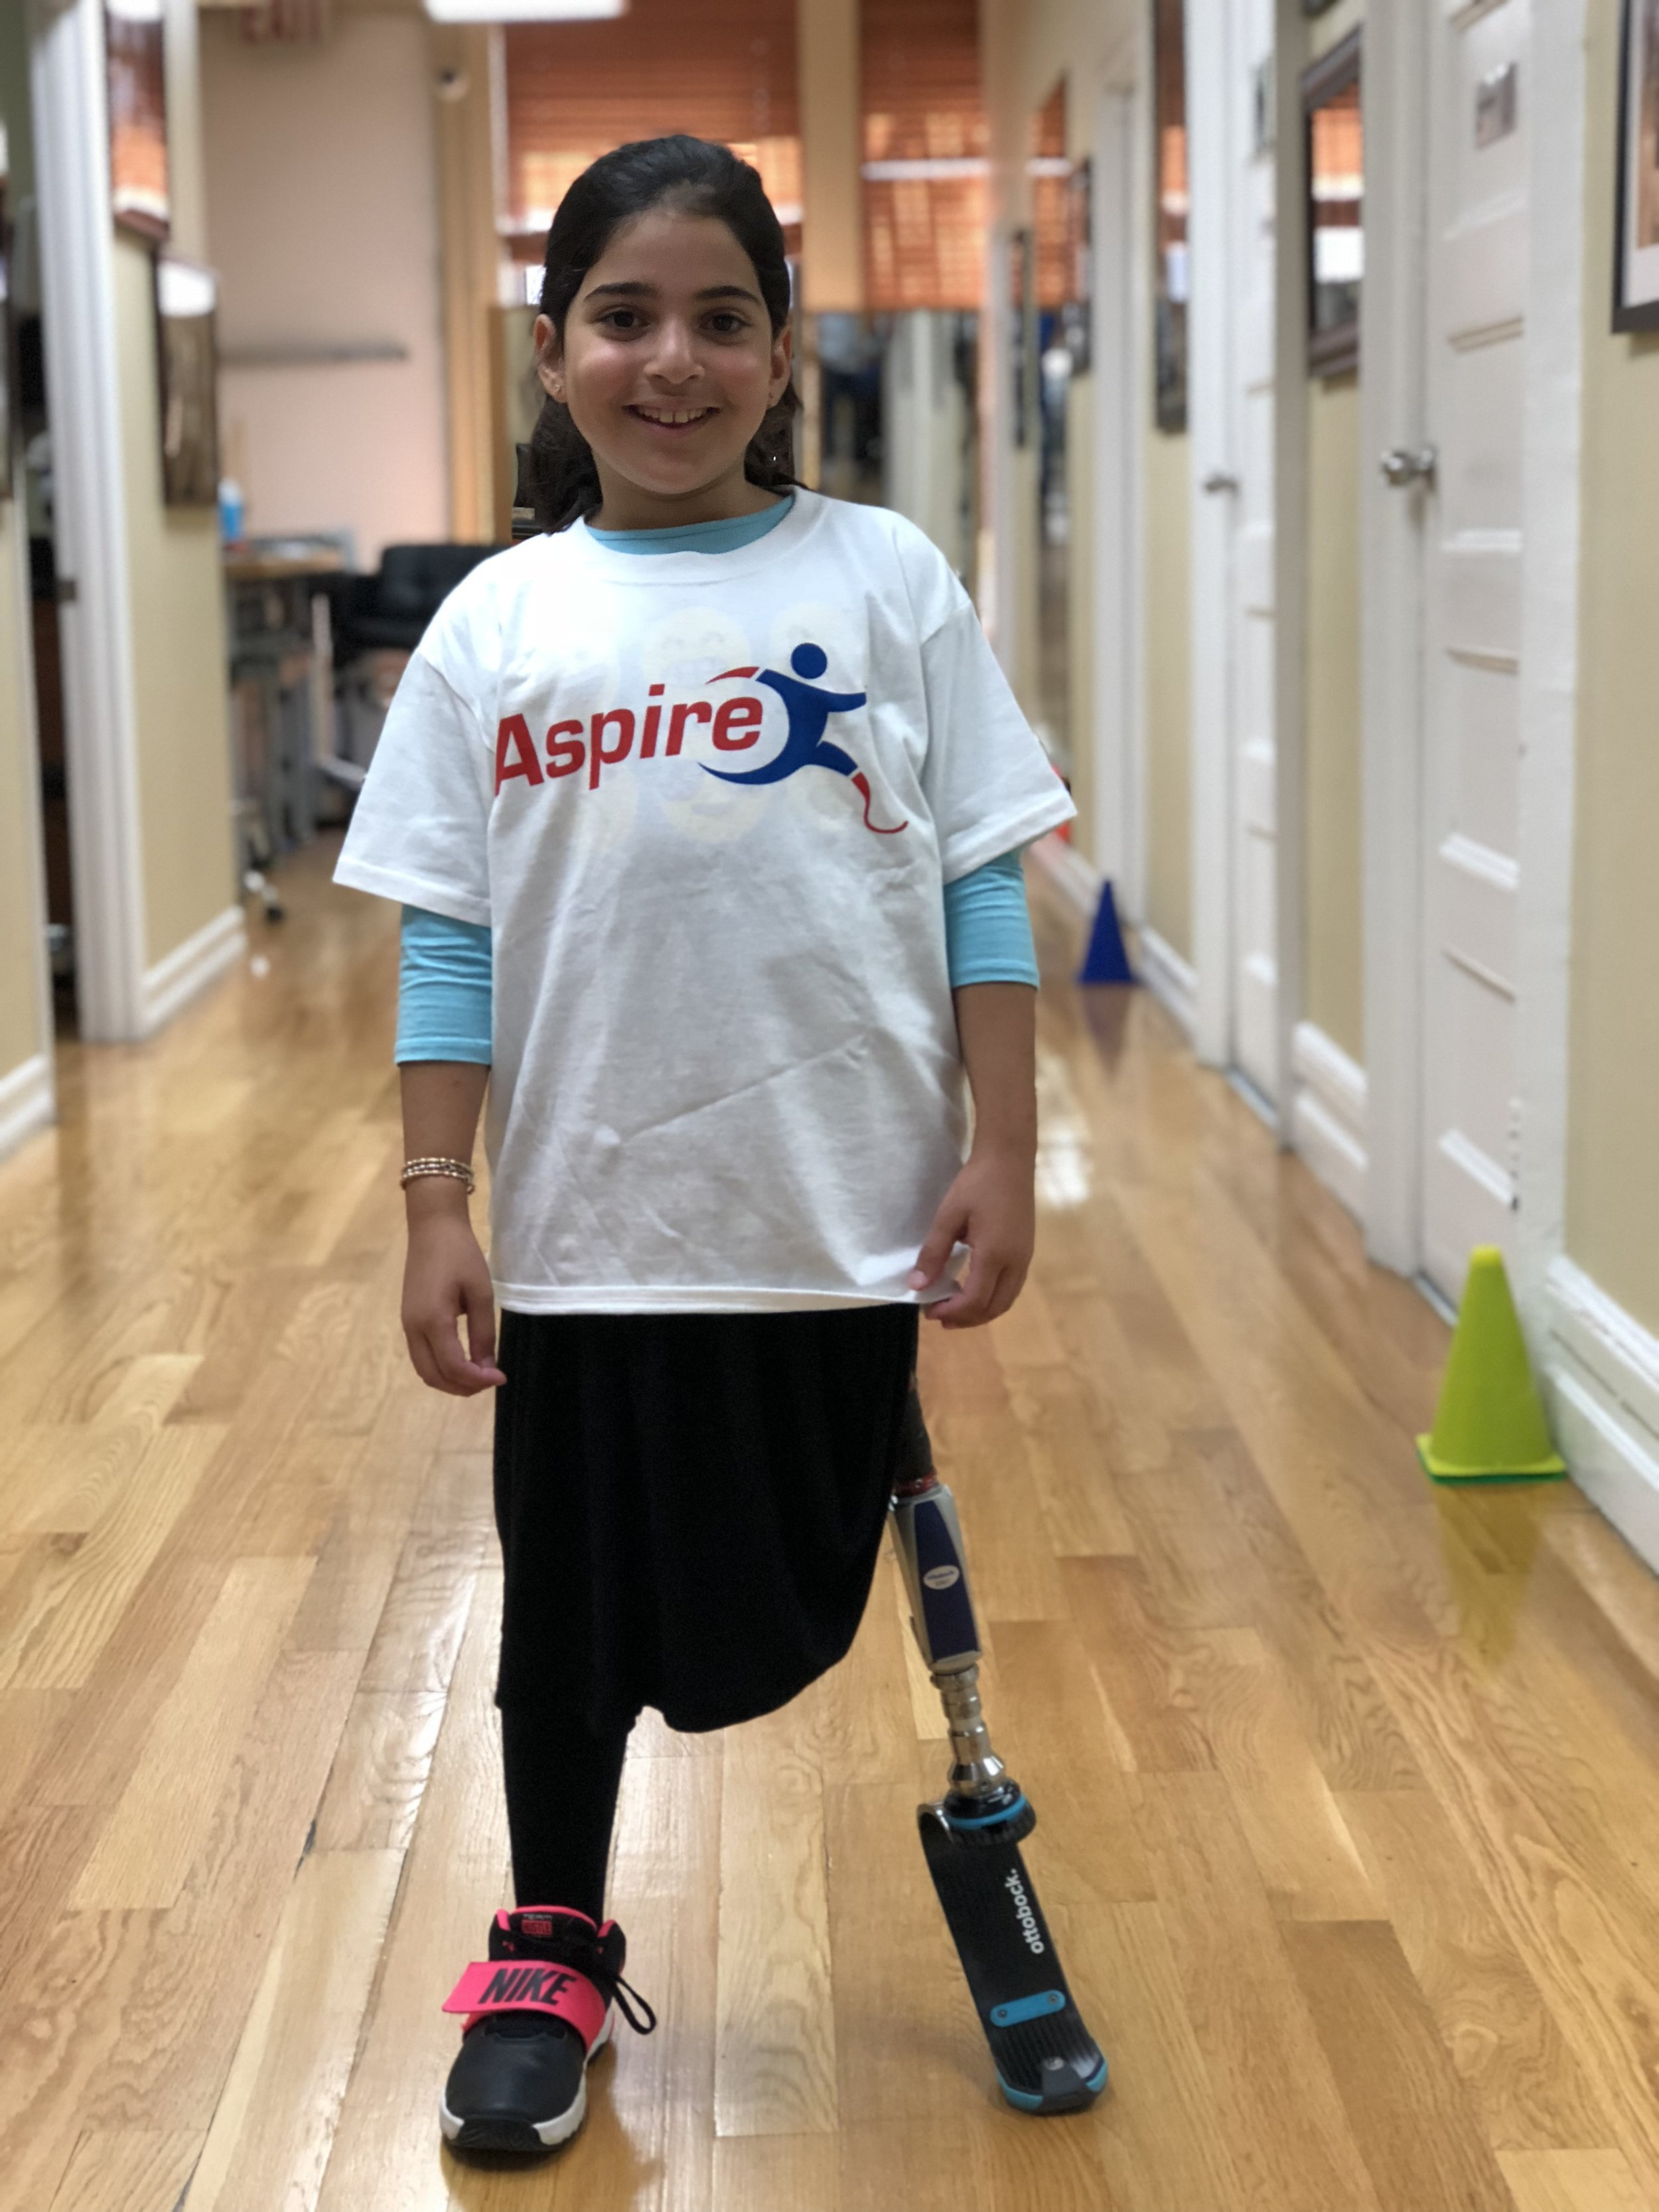 Bracha - Bracha is a hip disarticulation amputee who lost her leg at 1 years old due to Cancer. ASPIRE has provided Bracha with her first running leg of which she is now able to run, an incredible achievement for a hip disarticulation amputee.